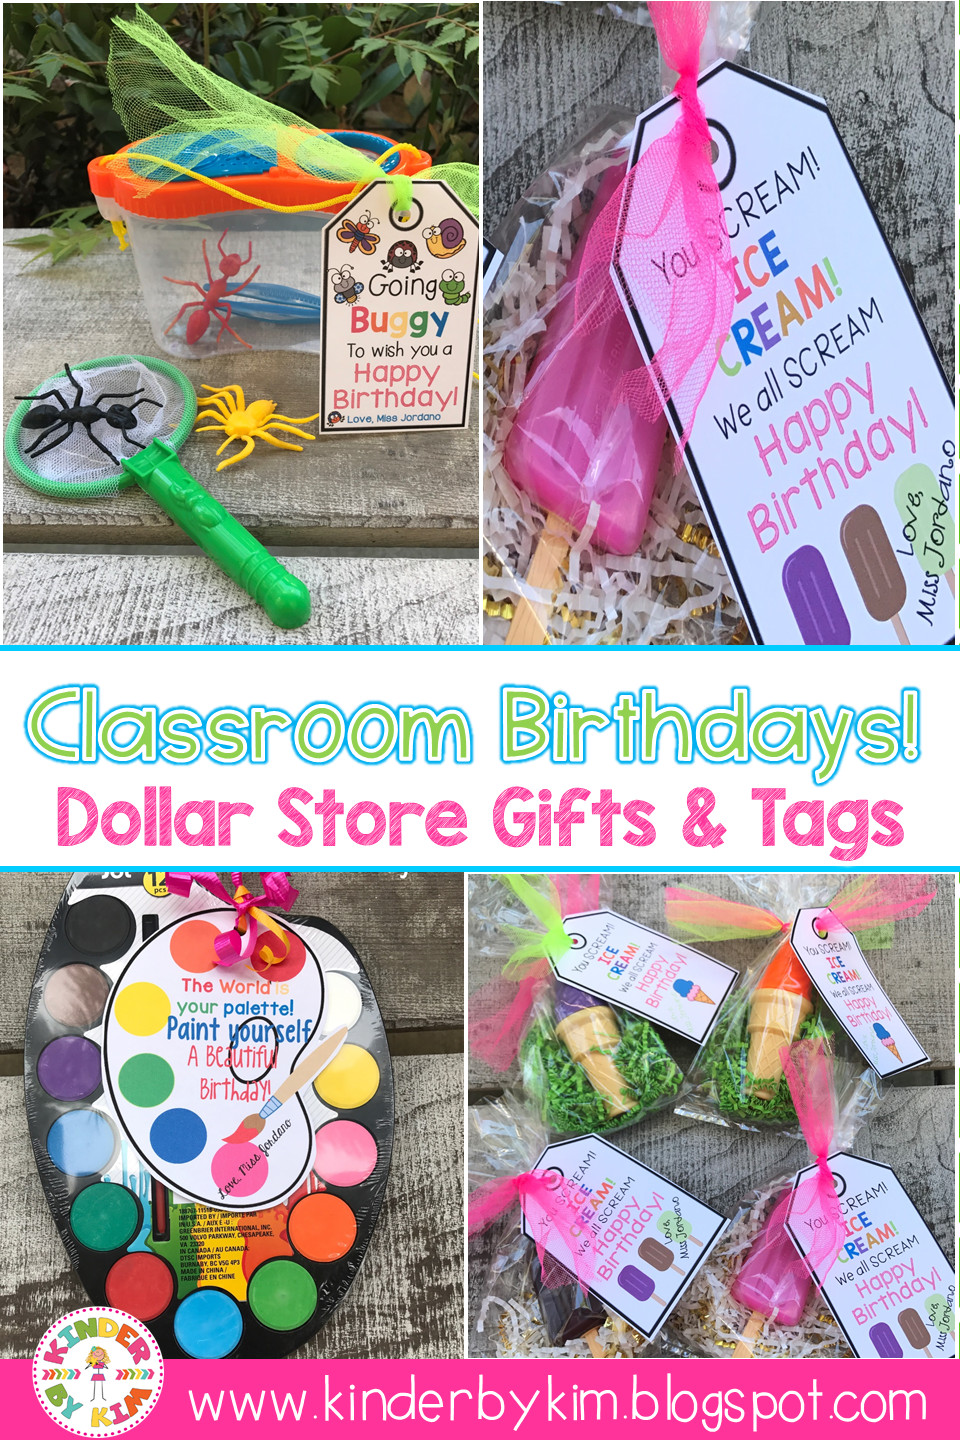 Best ideas about Birthday Gifts From Stores . Save or Pin KinderbyKim s Classroom Birthday Dollar Store Now.